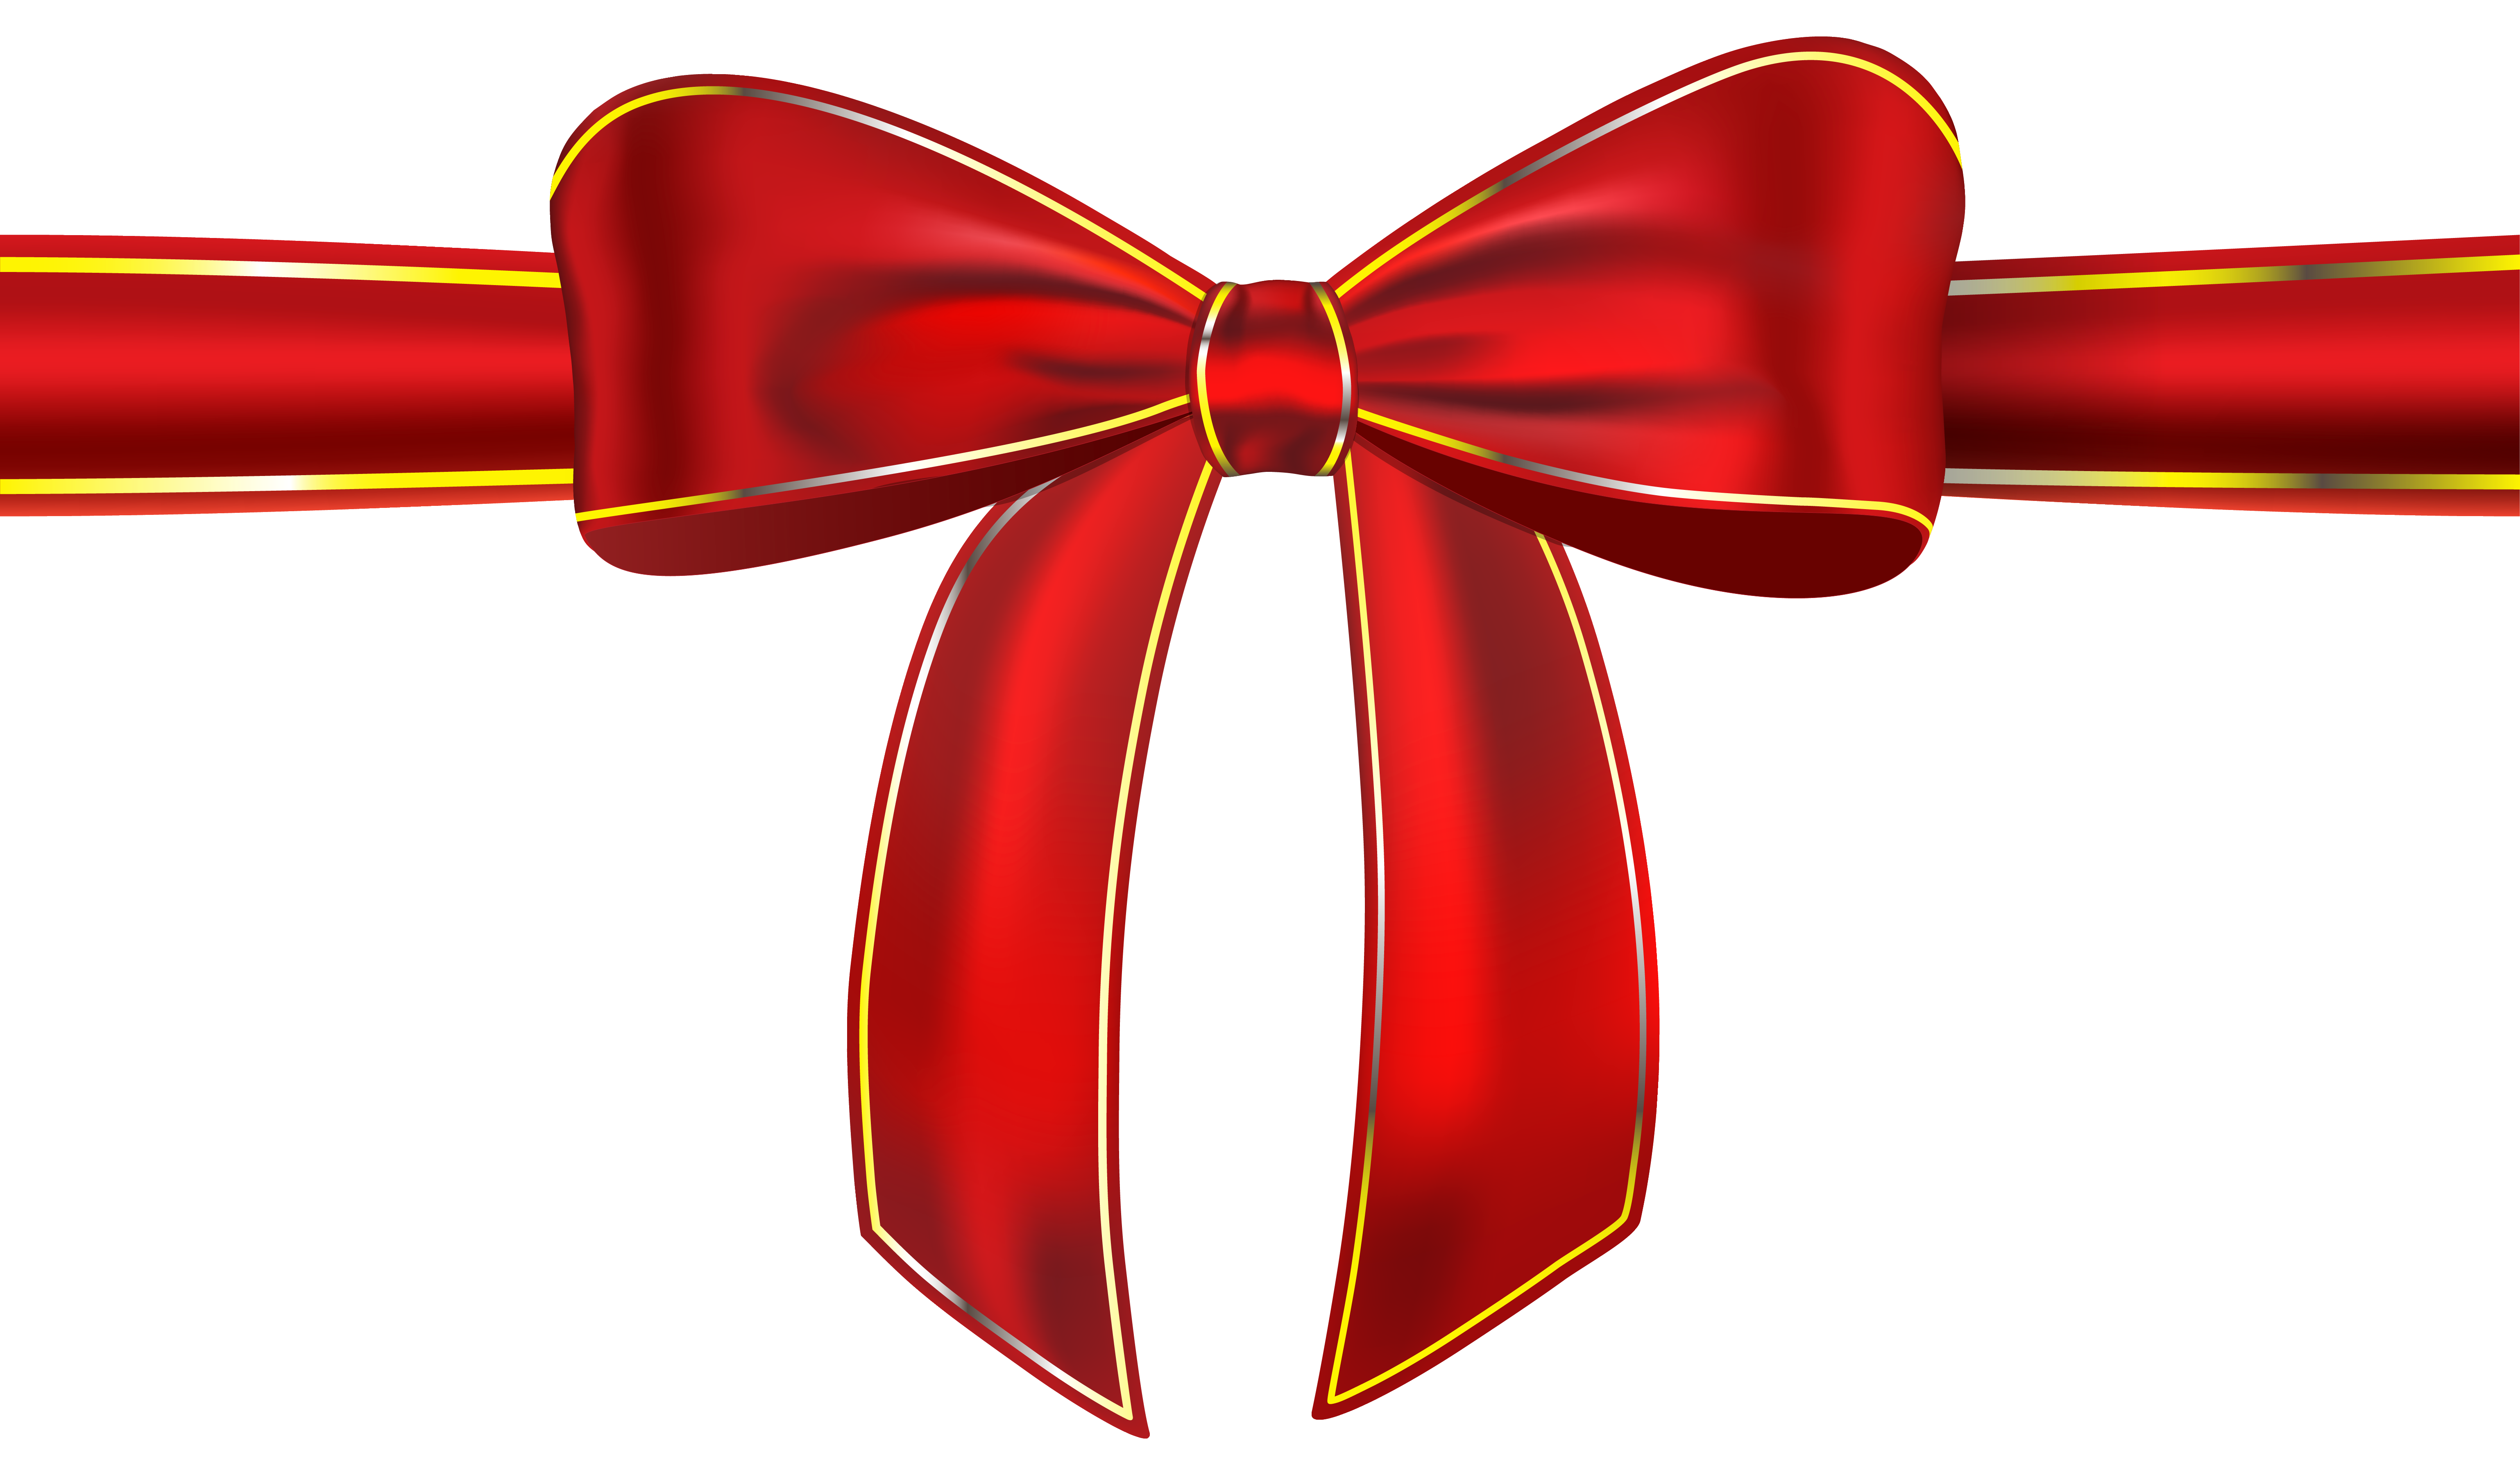 Bow clipart pin.